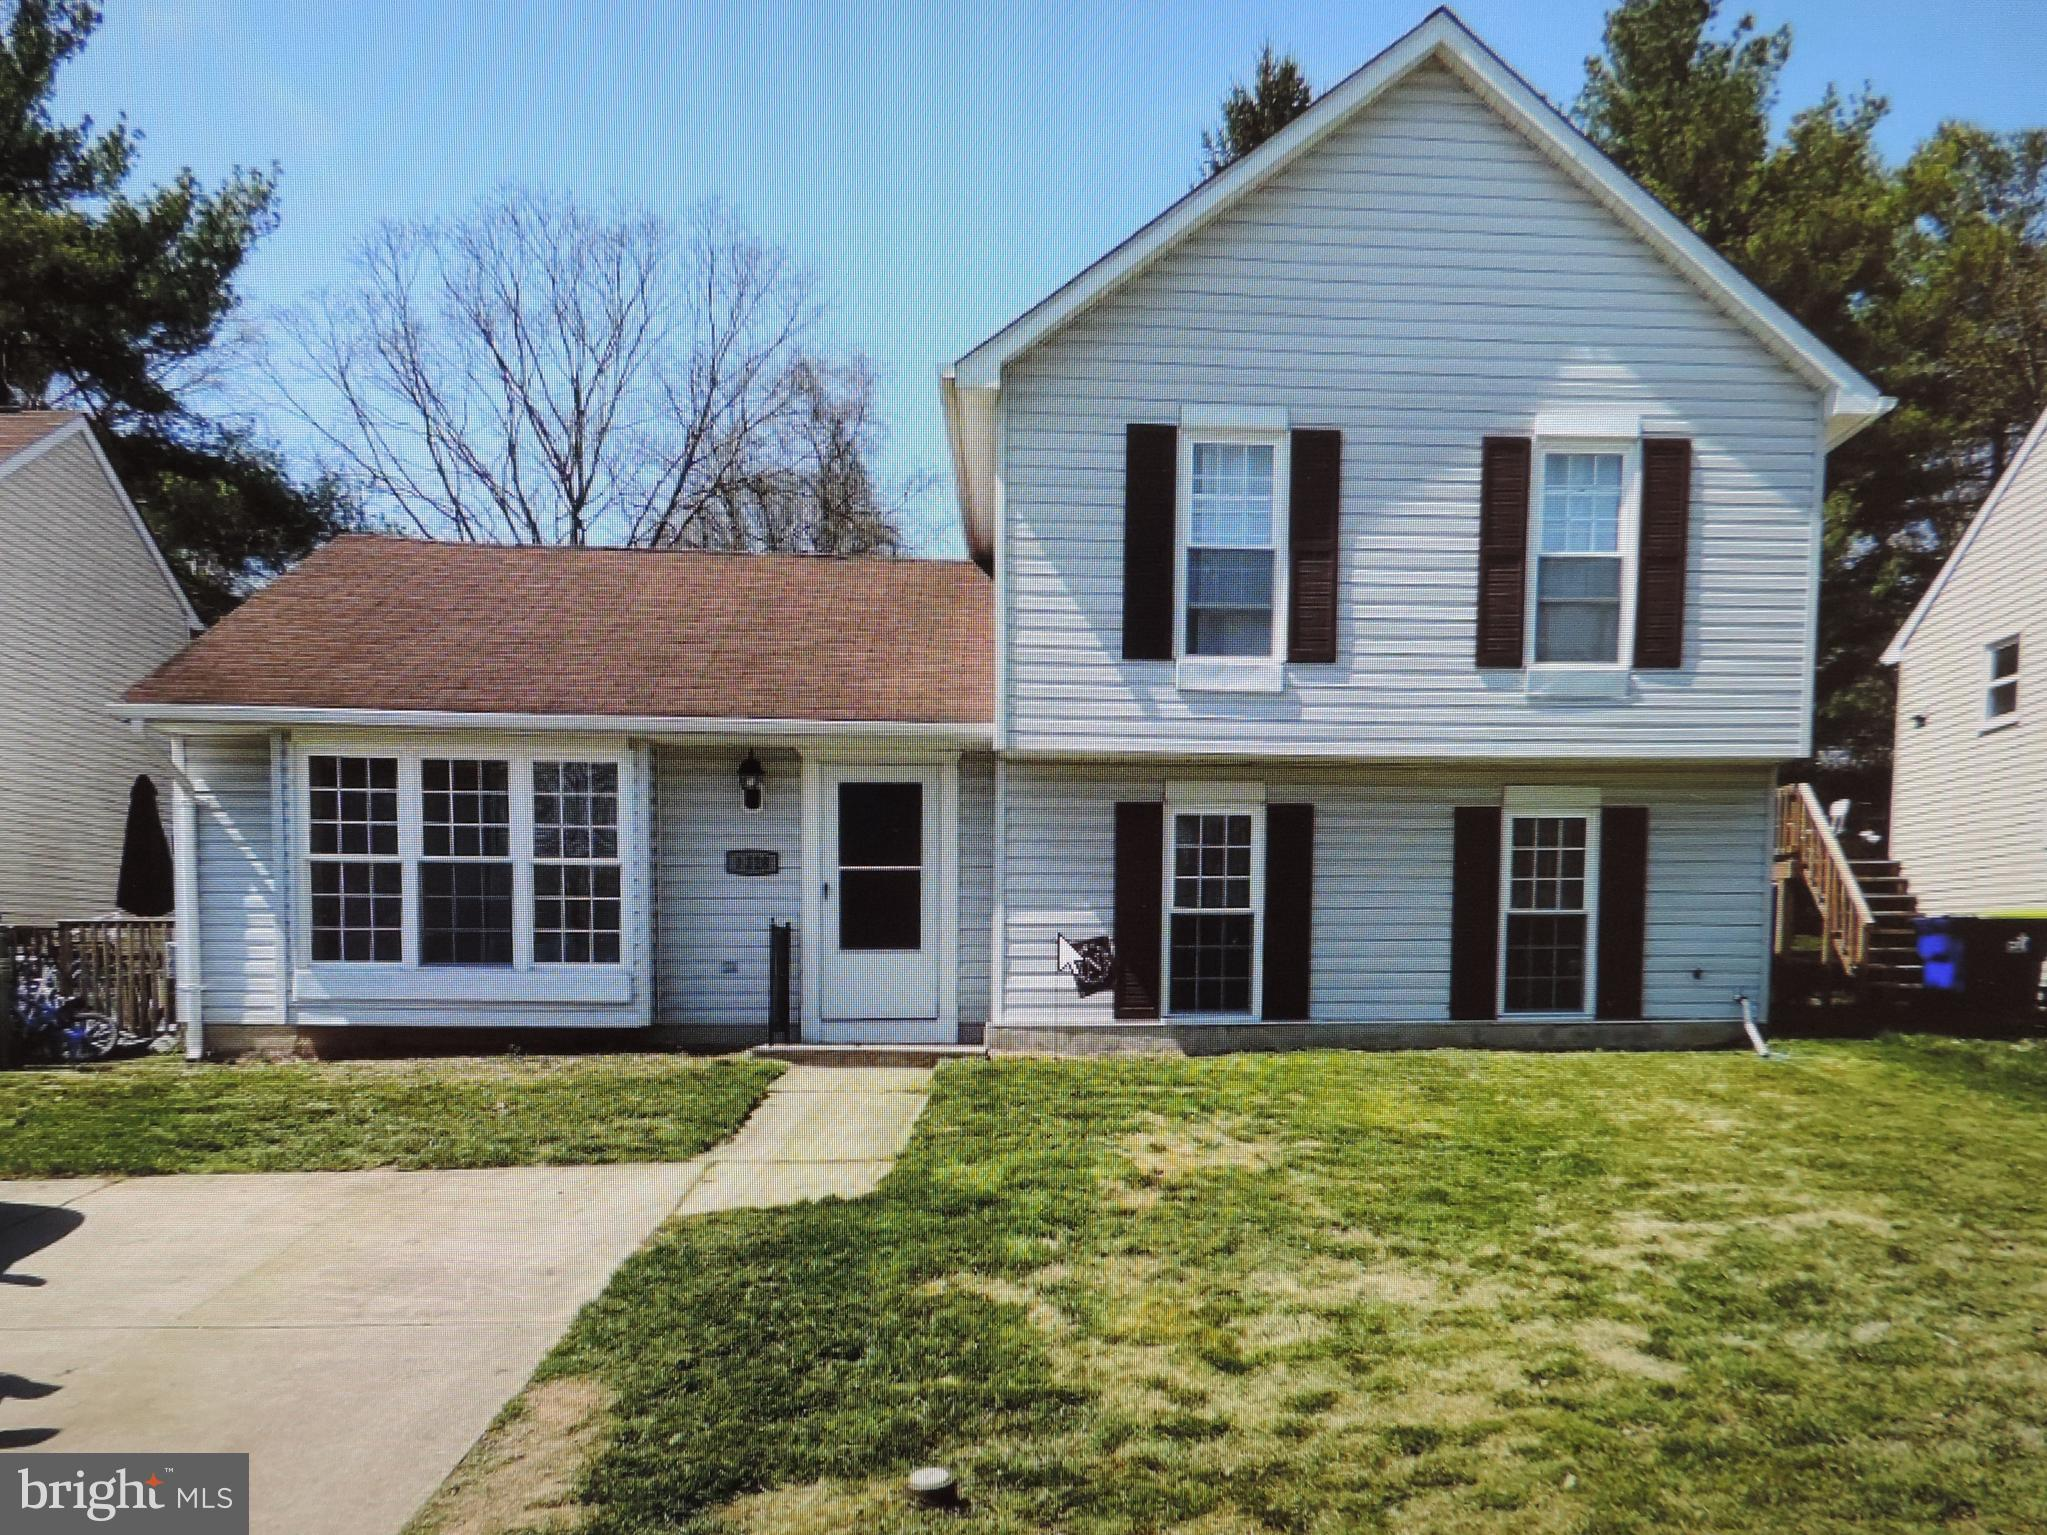 This 3 bedroom, 1 1/2 bath Split Level has NUMEROUS UPDATES!  New siding and gutters installed 2018/